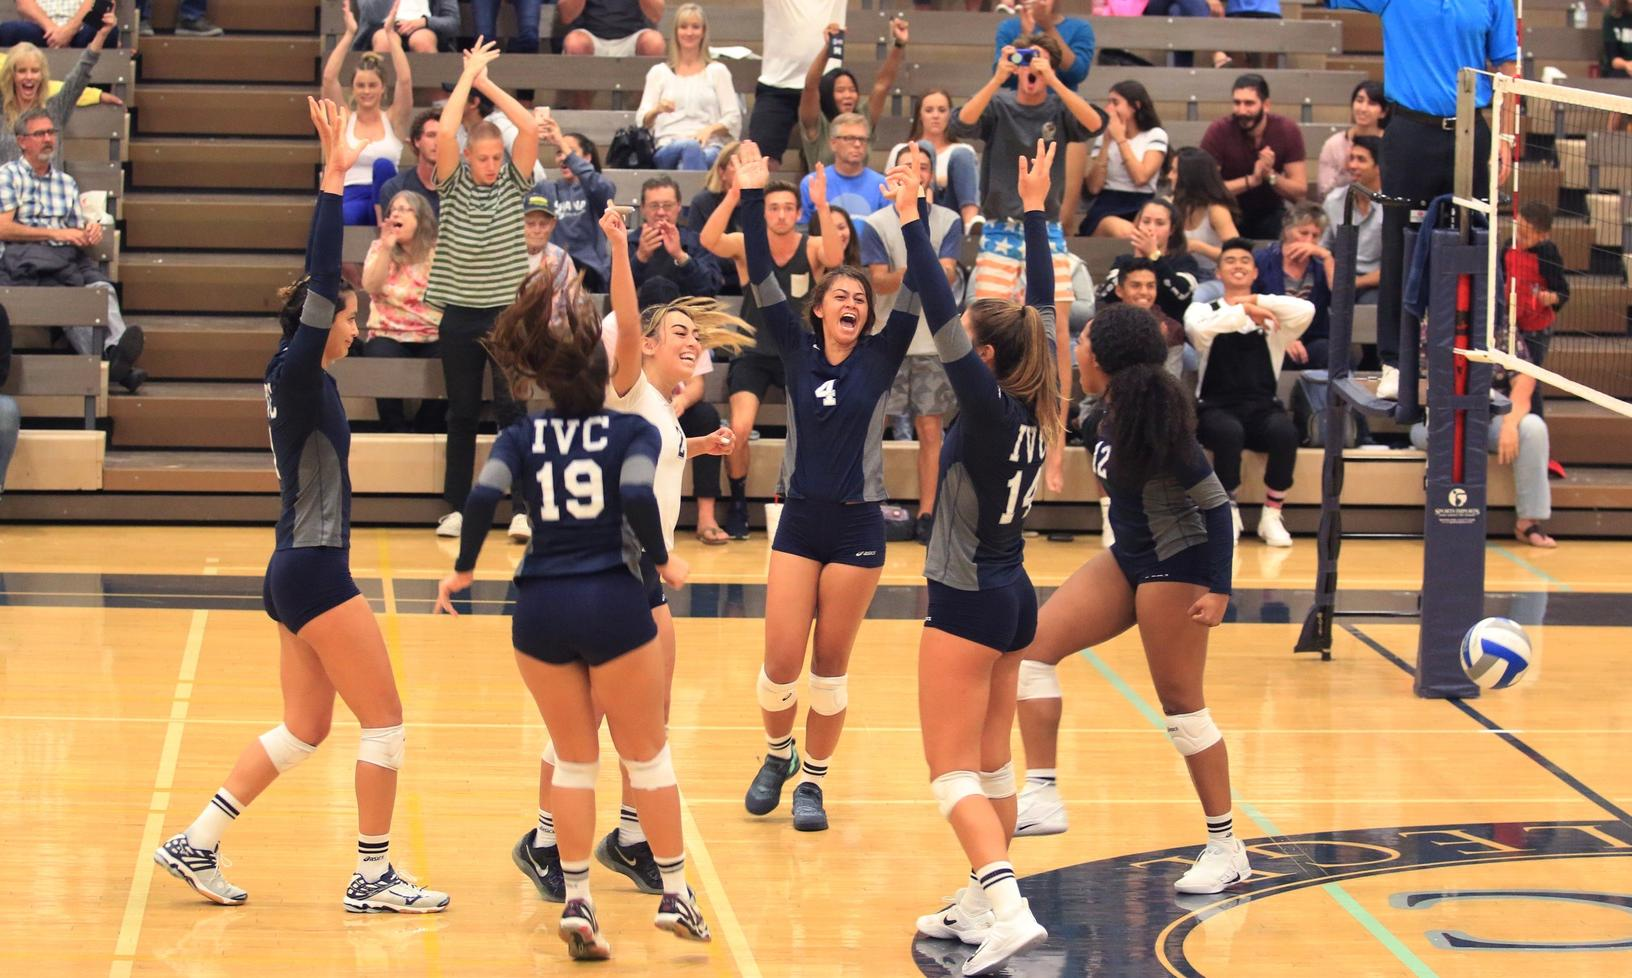 Women's volleyball opens 2018 season at home Wednesday